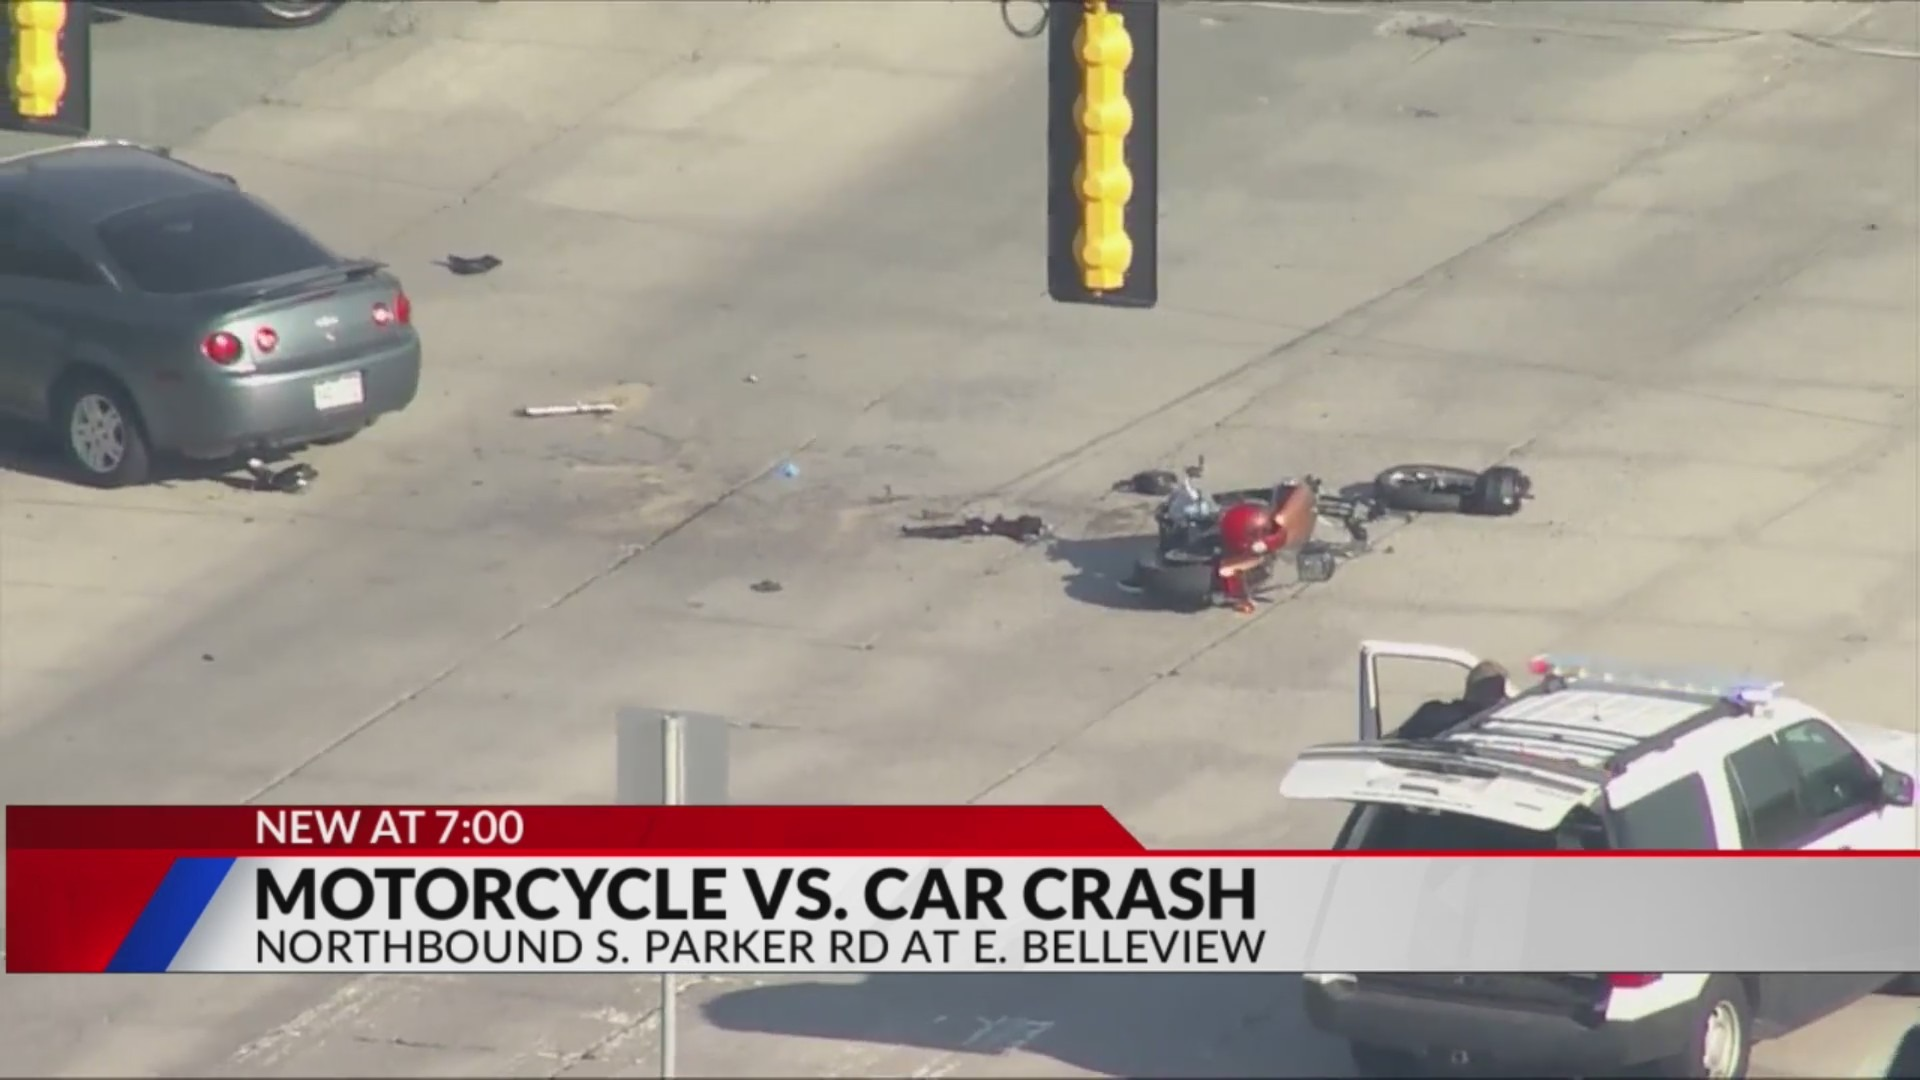 Aerial view of motorcycle damaged in the middle of an intersection